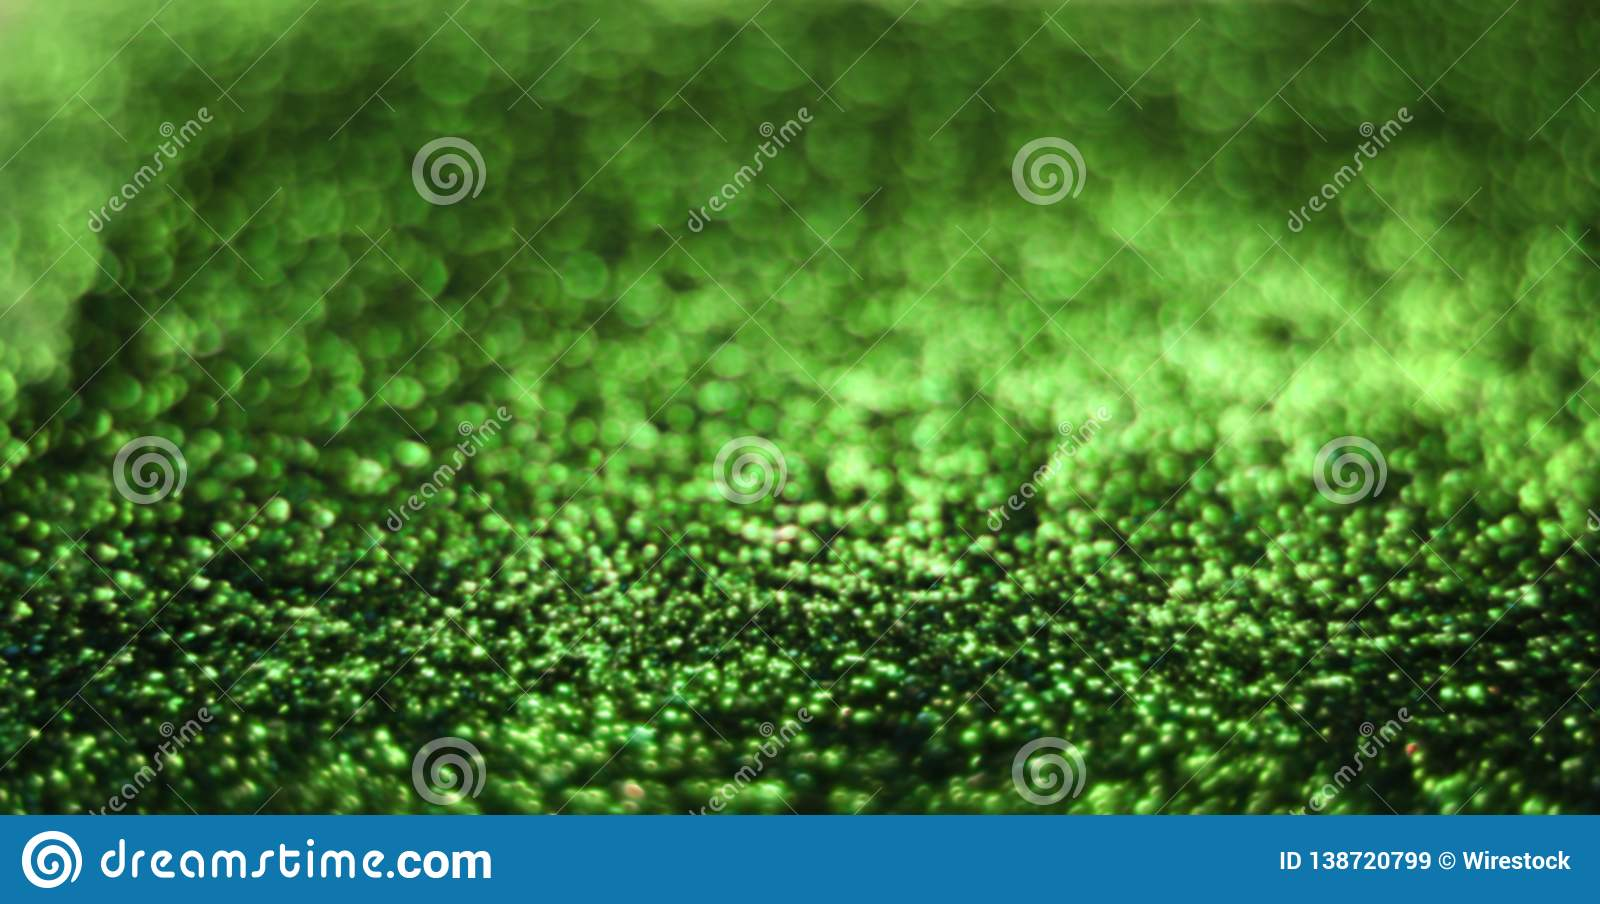 Green Shiny Aesthetic Background Stock Image Image Of